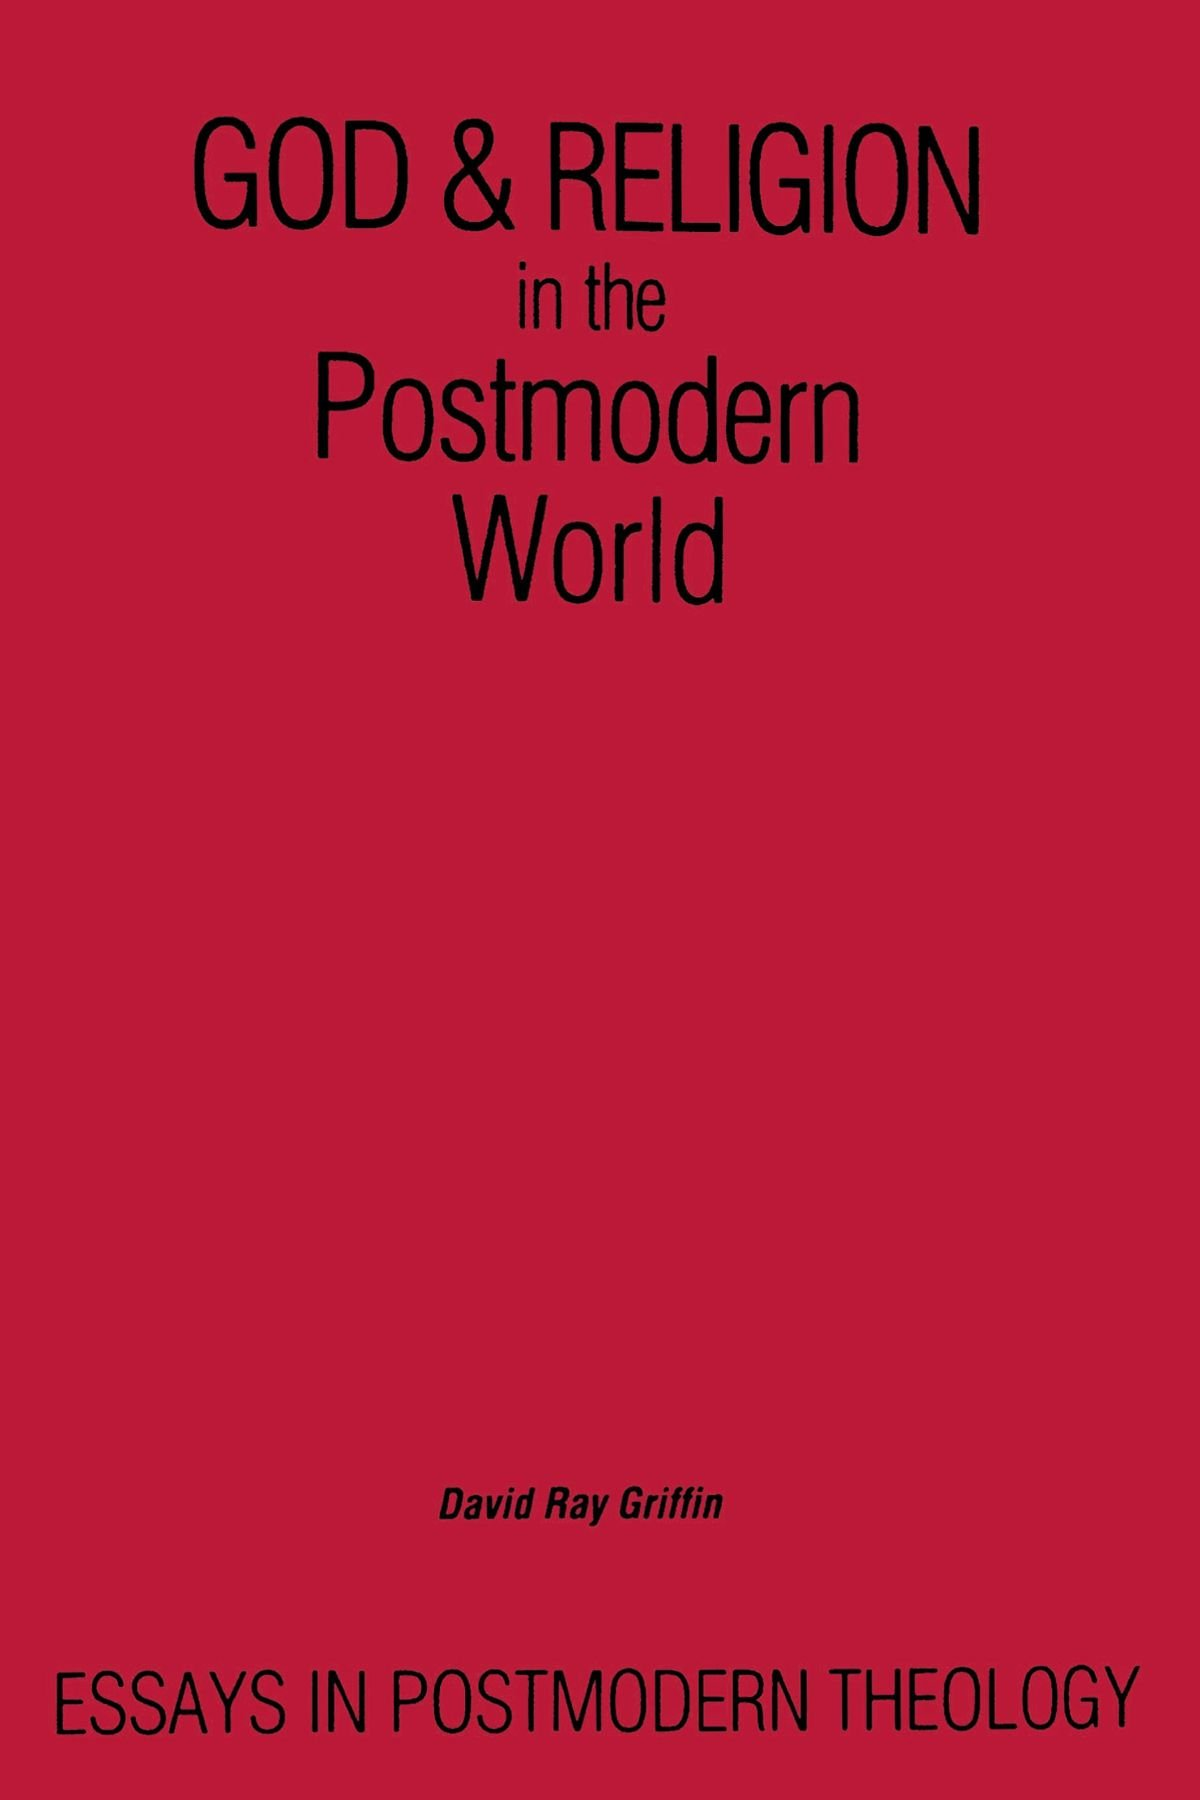 essay on postmodernism write essay postmodernism essay a life of  write essay postmodernism write essay postmodernism